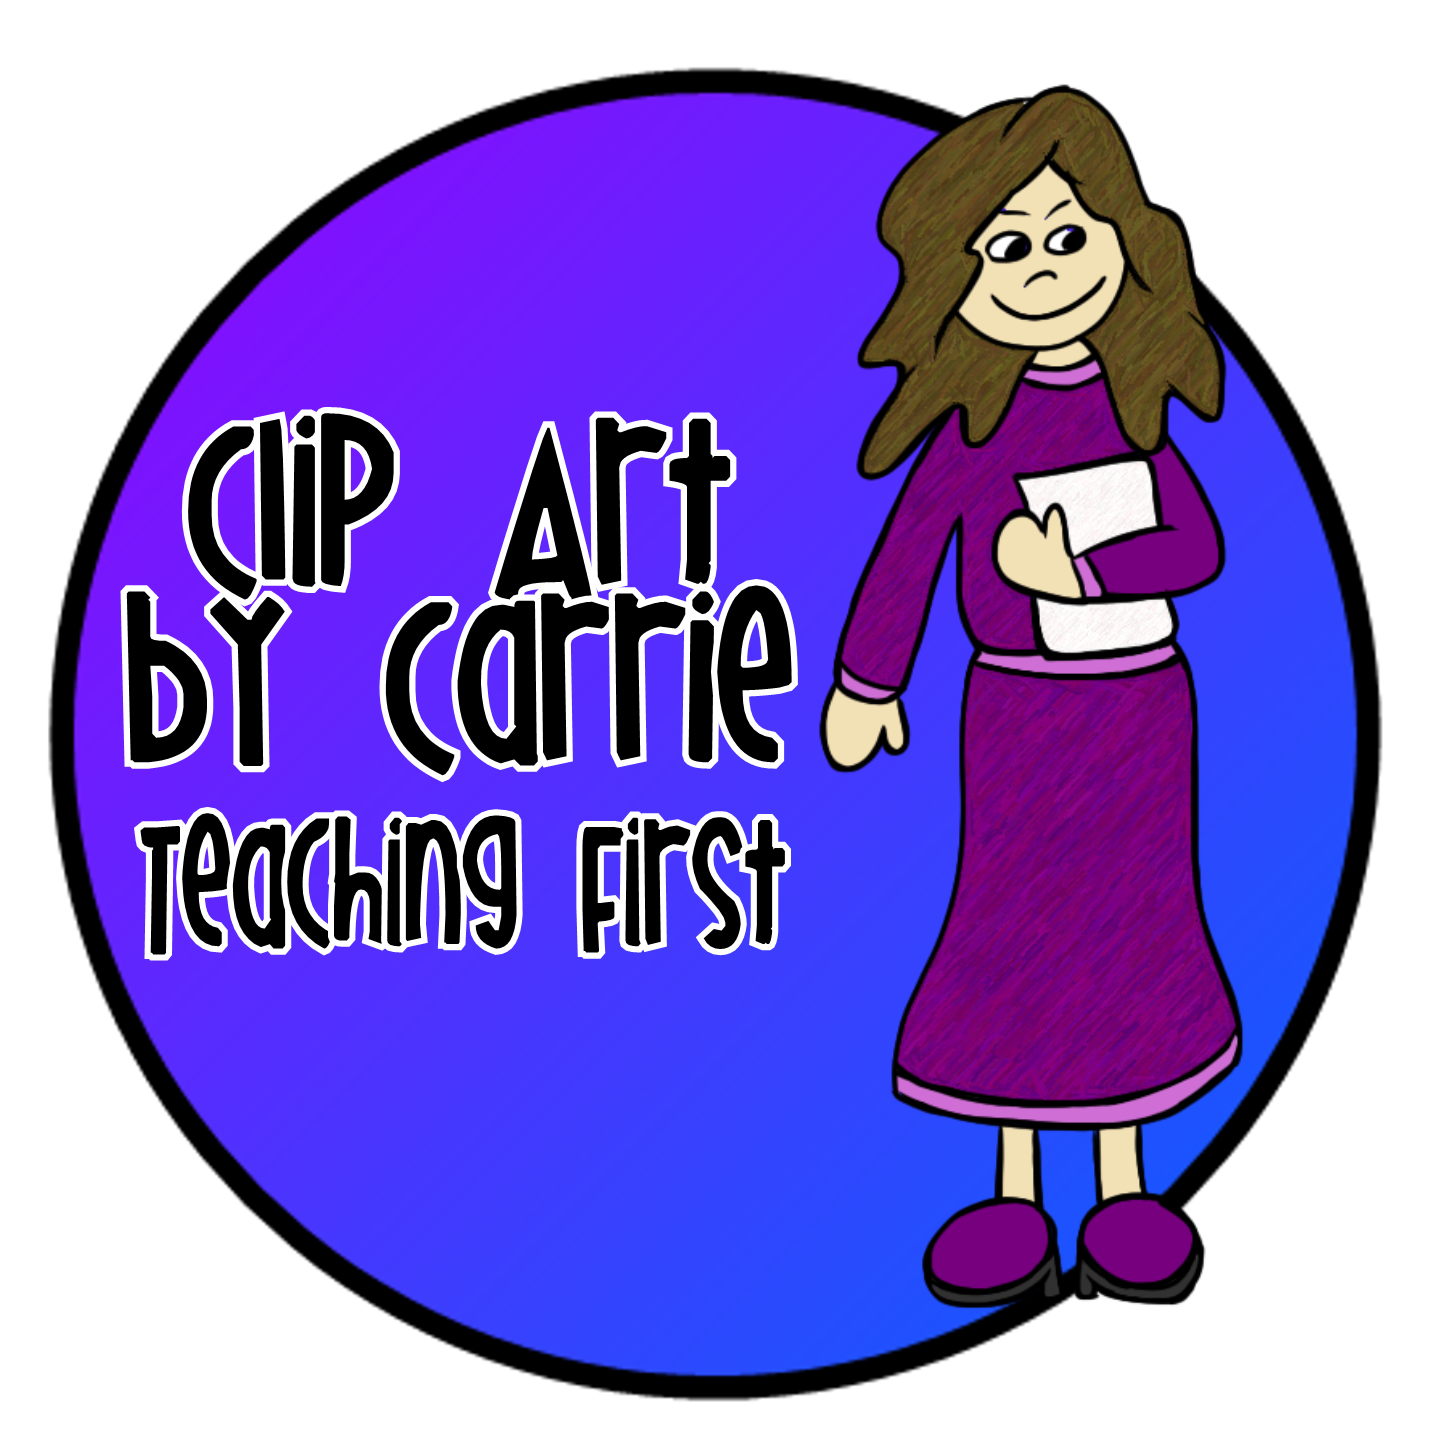 Clip art by carrie. Planet clipart teacher